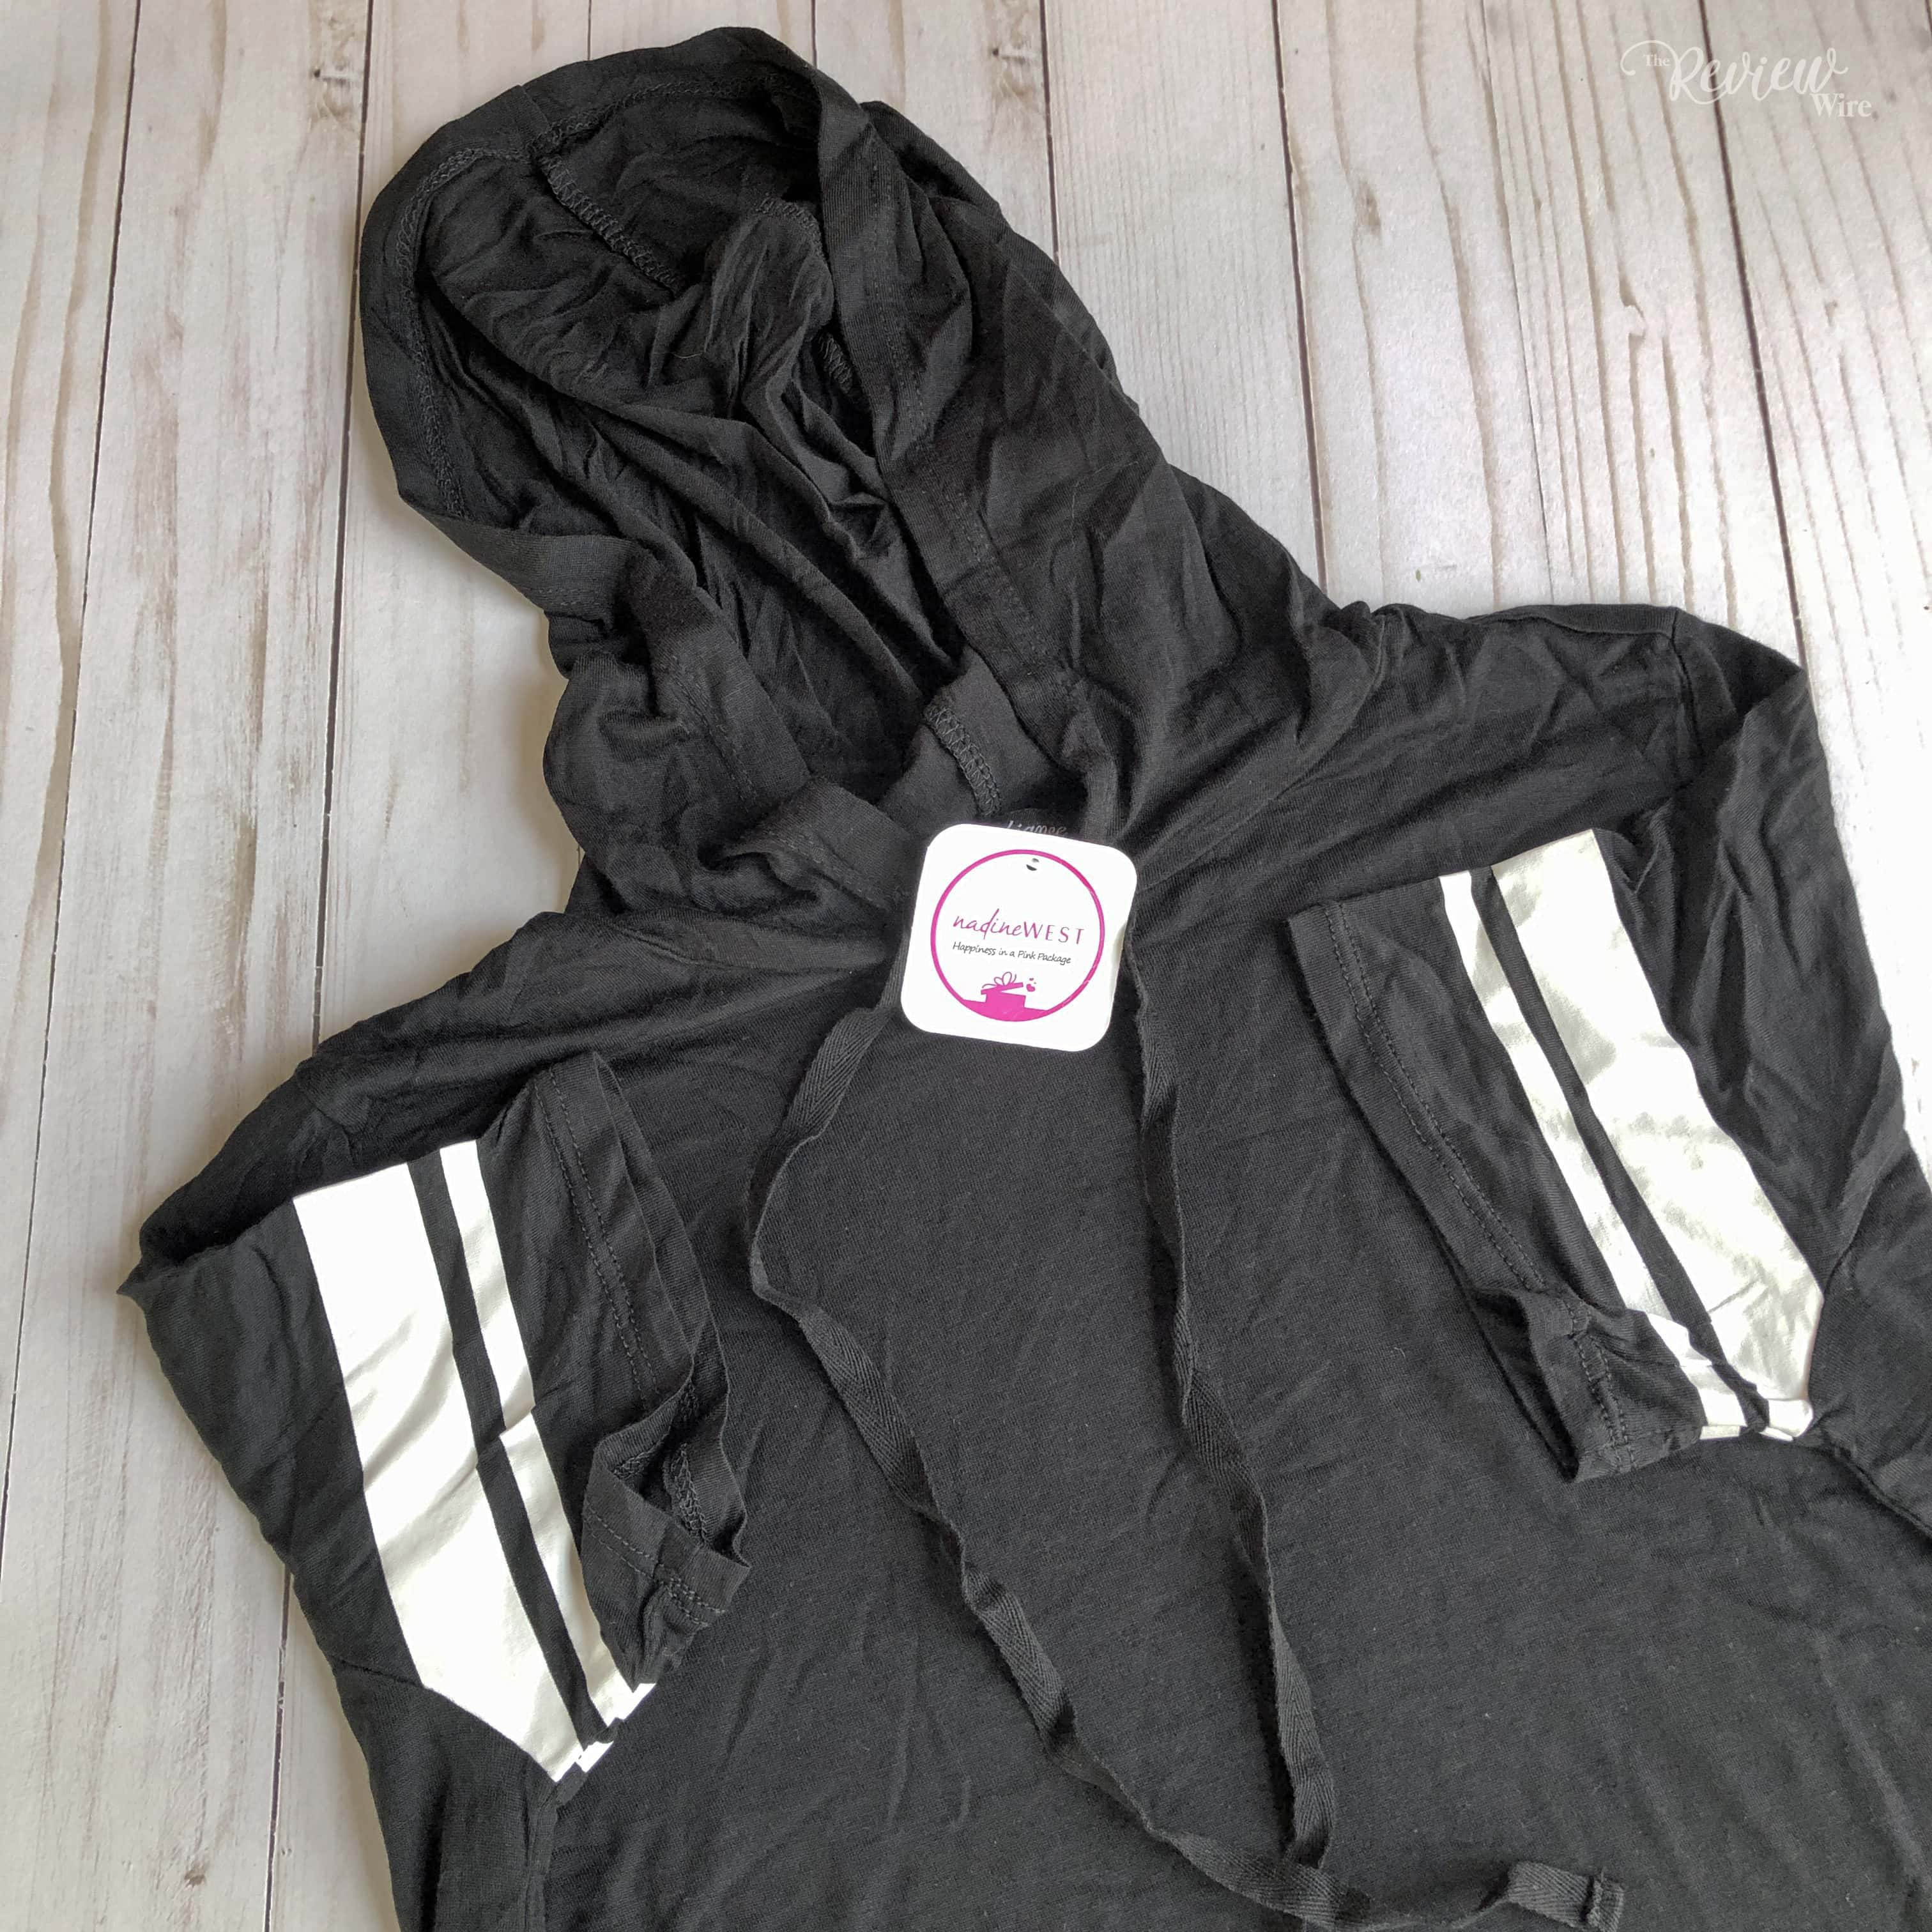 The Review Wire Nadine West April 2019 Black Hoodie T-shirt